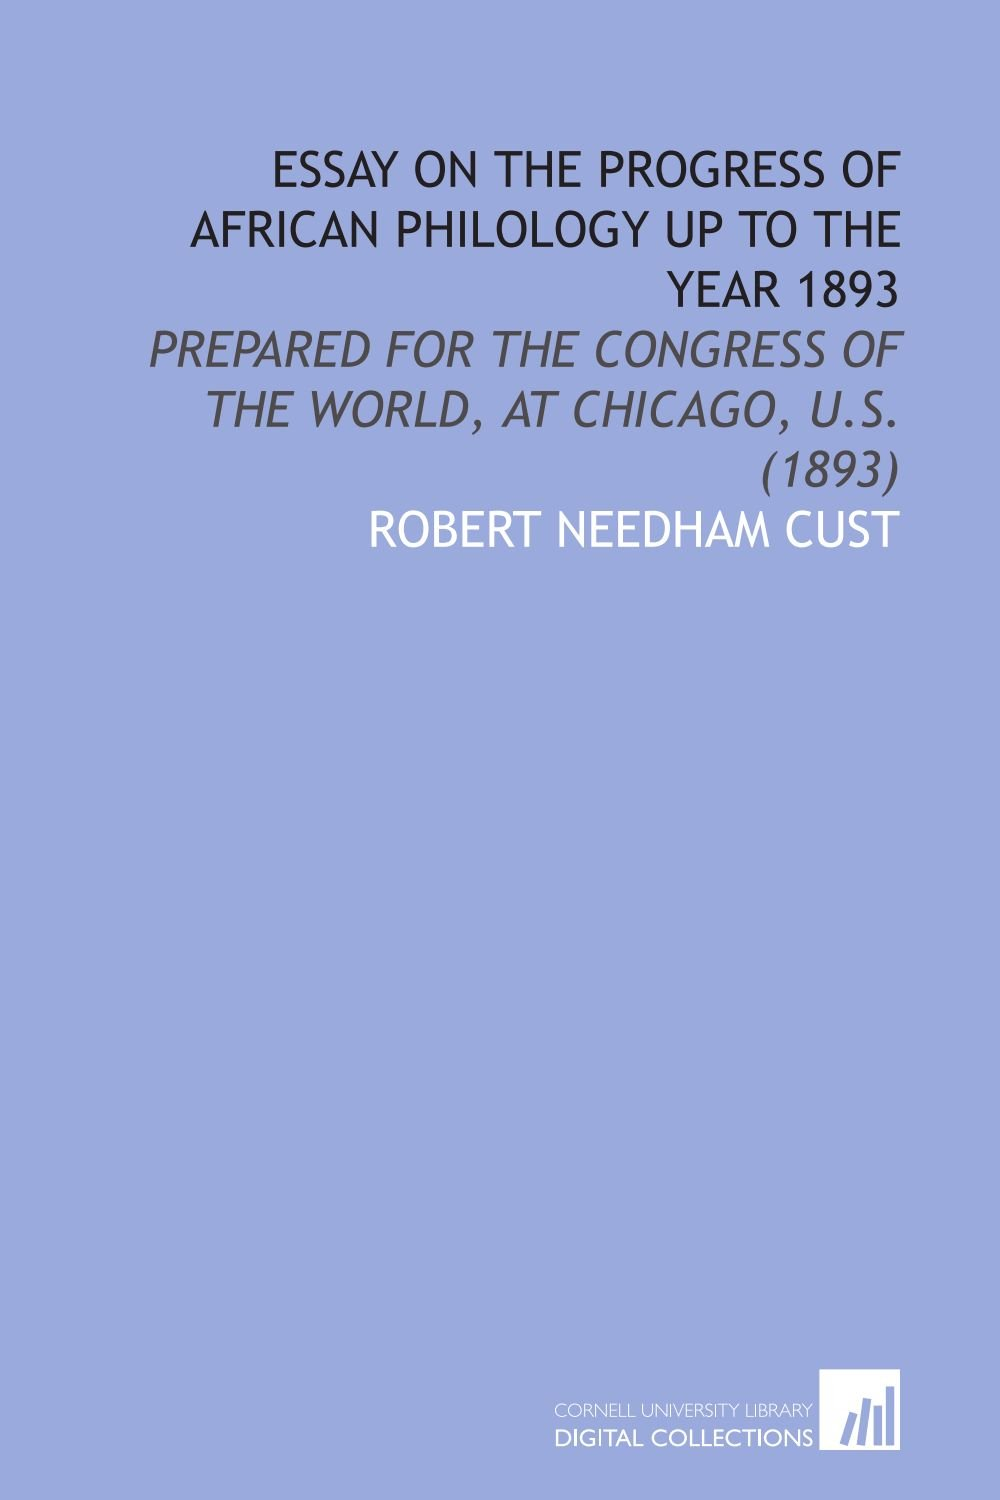 Download Essay on the Progress of African Philology Up to the Year 1893: Prepared for the Congress of the World, at Chicago, U.S. (1893) ebook